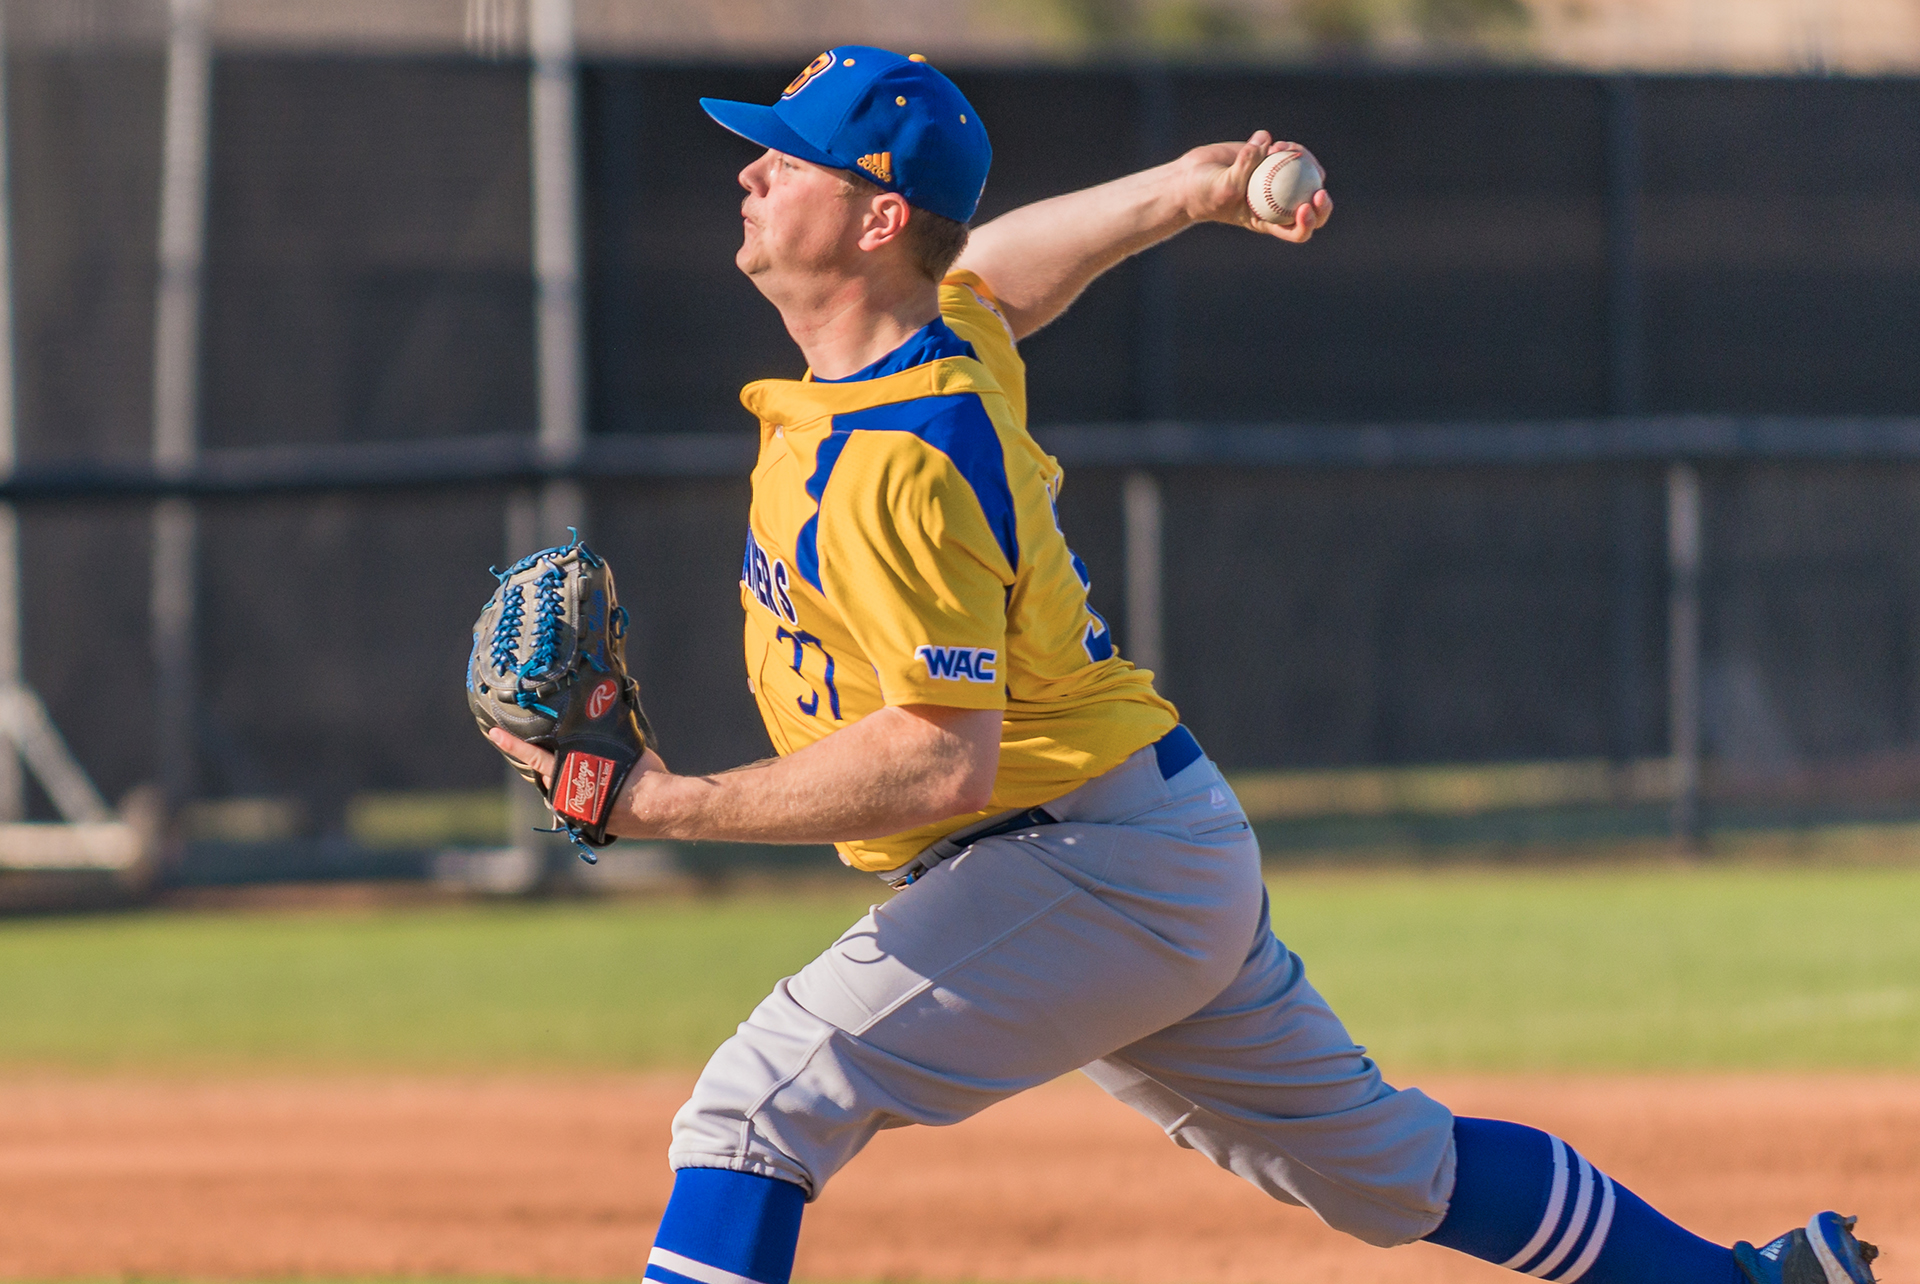 Victoria Eagles alum Ethan Skuija (Victoria, BC) tossed a complete game and struck out 11 for California State University Bakersfield and was named Western Athletic Conference Pitcher of the Week for his performance.